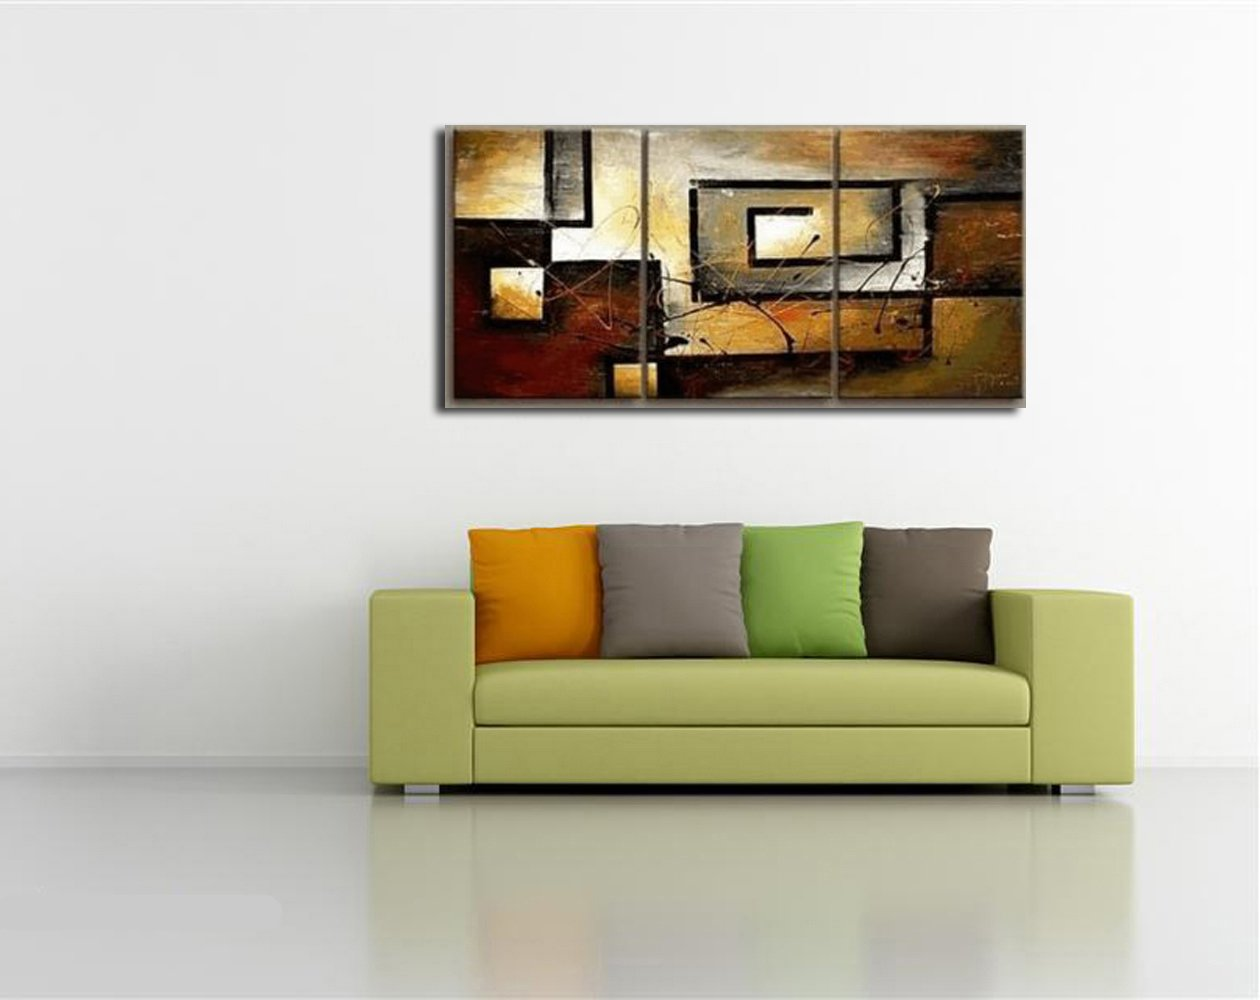 Amazon.com: Mon Art 100% Hand Painted Oil Painting Abstract Art Large  Modern Art 3 Piece Wall Art Canvas Art for Home Decoration  (UnStretch/UnFrame): ...